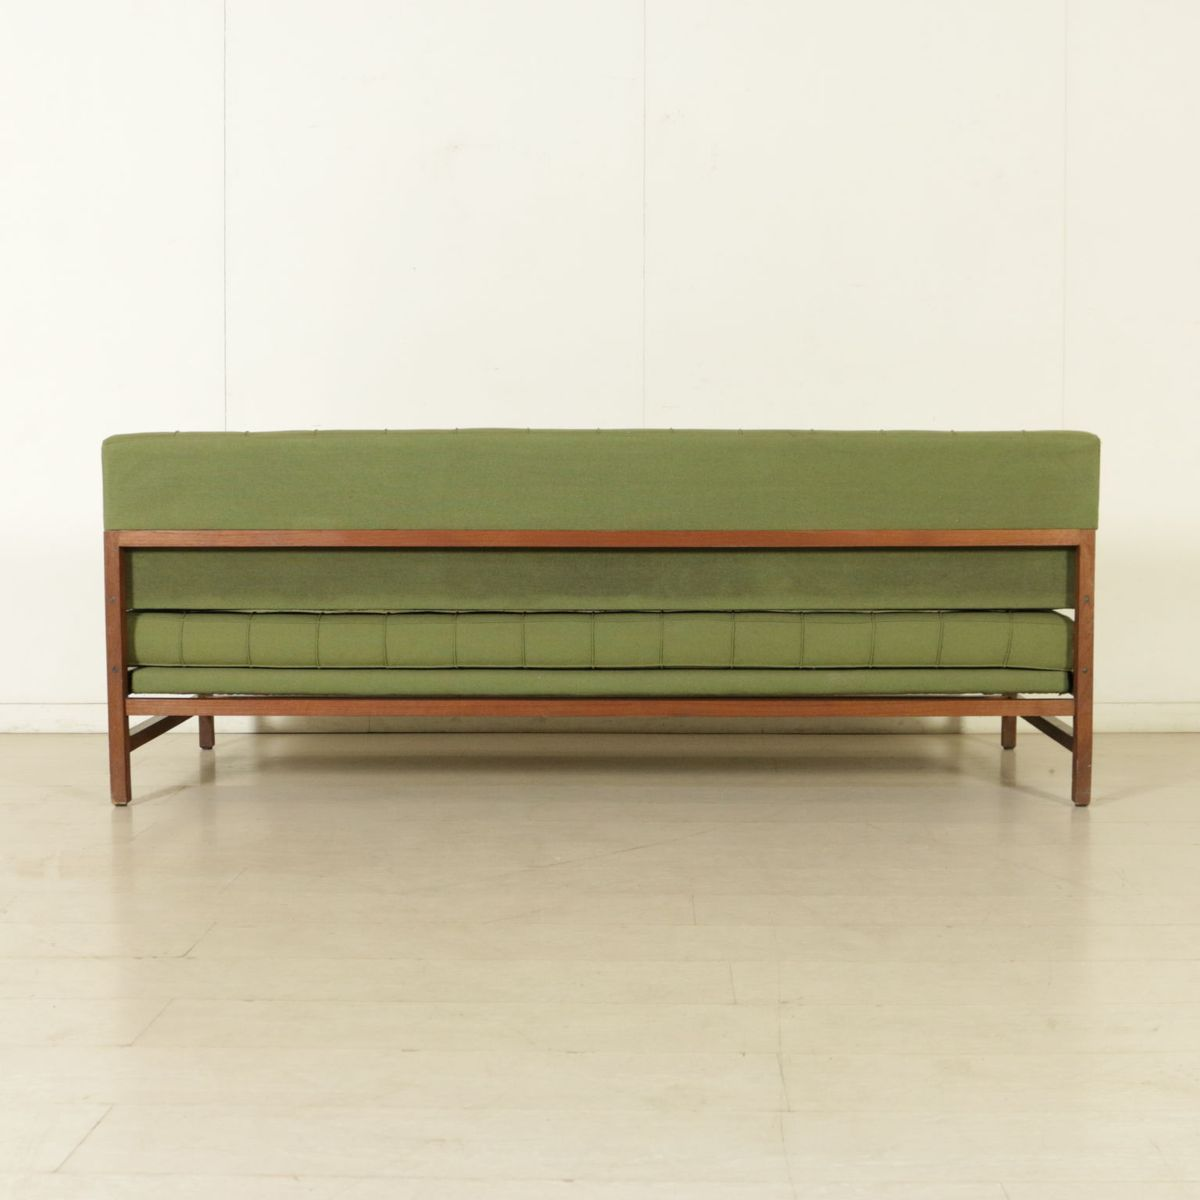 Vintage Italian Sofa With Pouf In Teak And Fabric 1960s